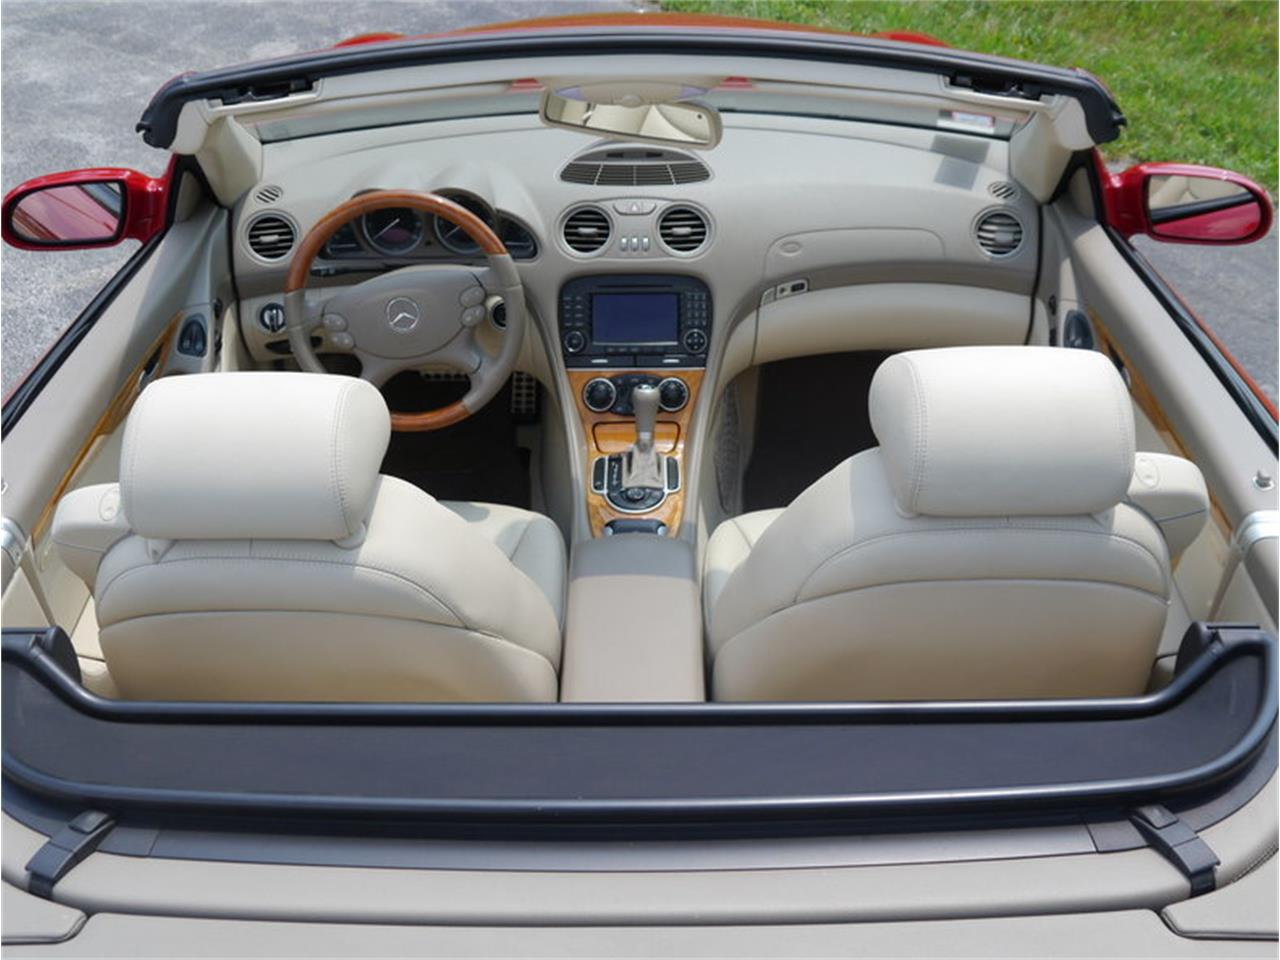 Large Picture of '06 SL500 located in Alsip Illinois - $26,900.00 - LEGR